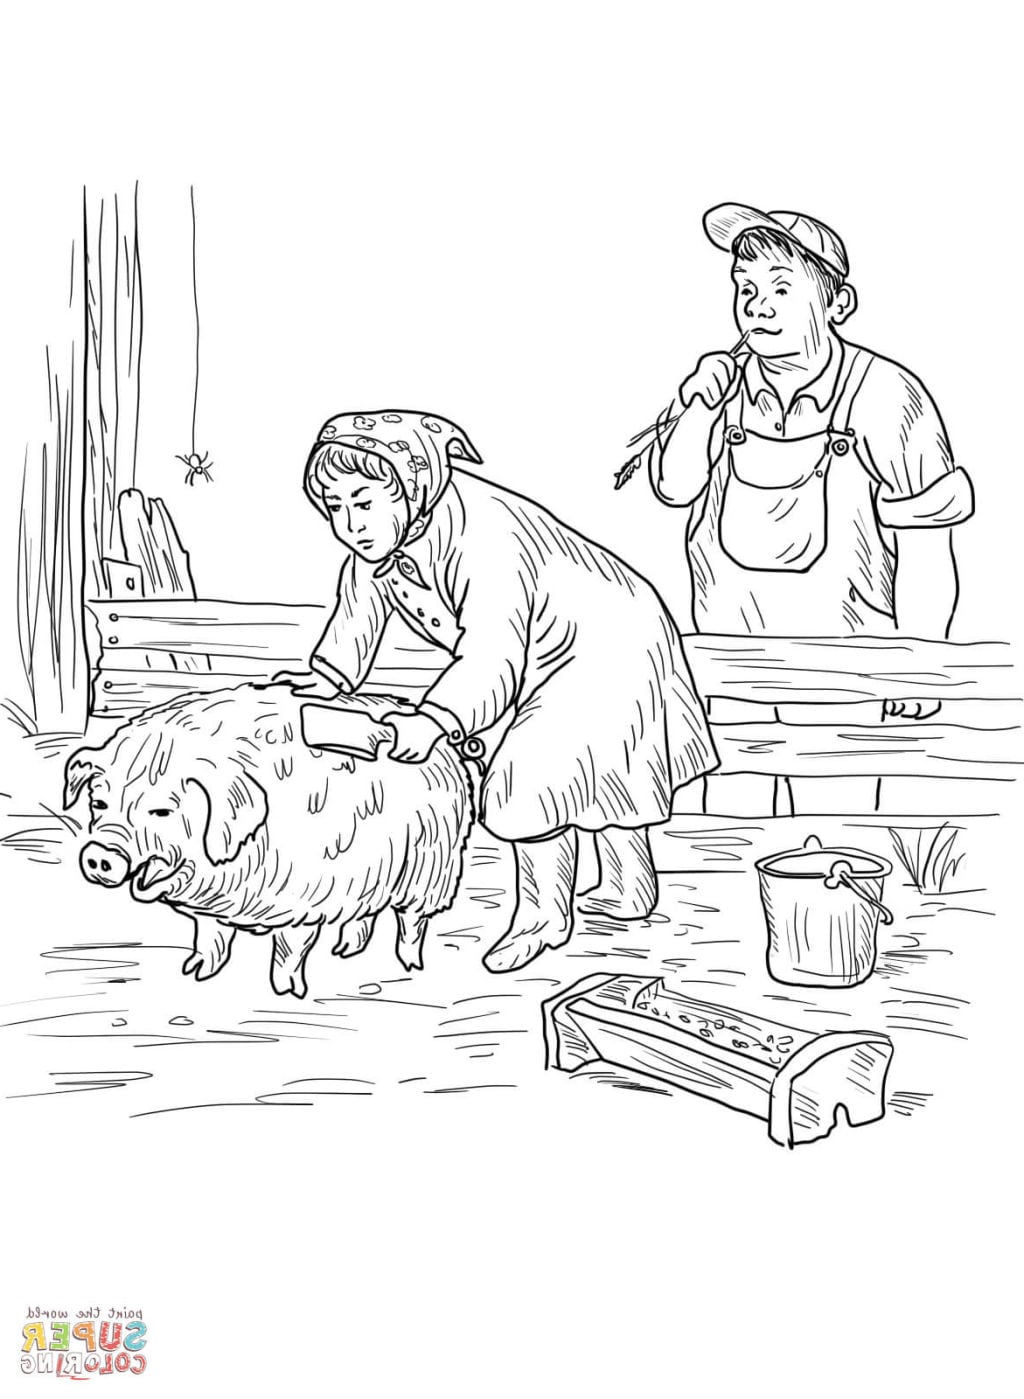 Focus Charlotte S Web Coloring Pages Charlottes Free Full Size